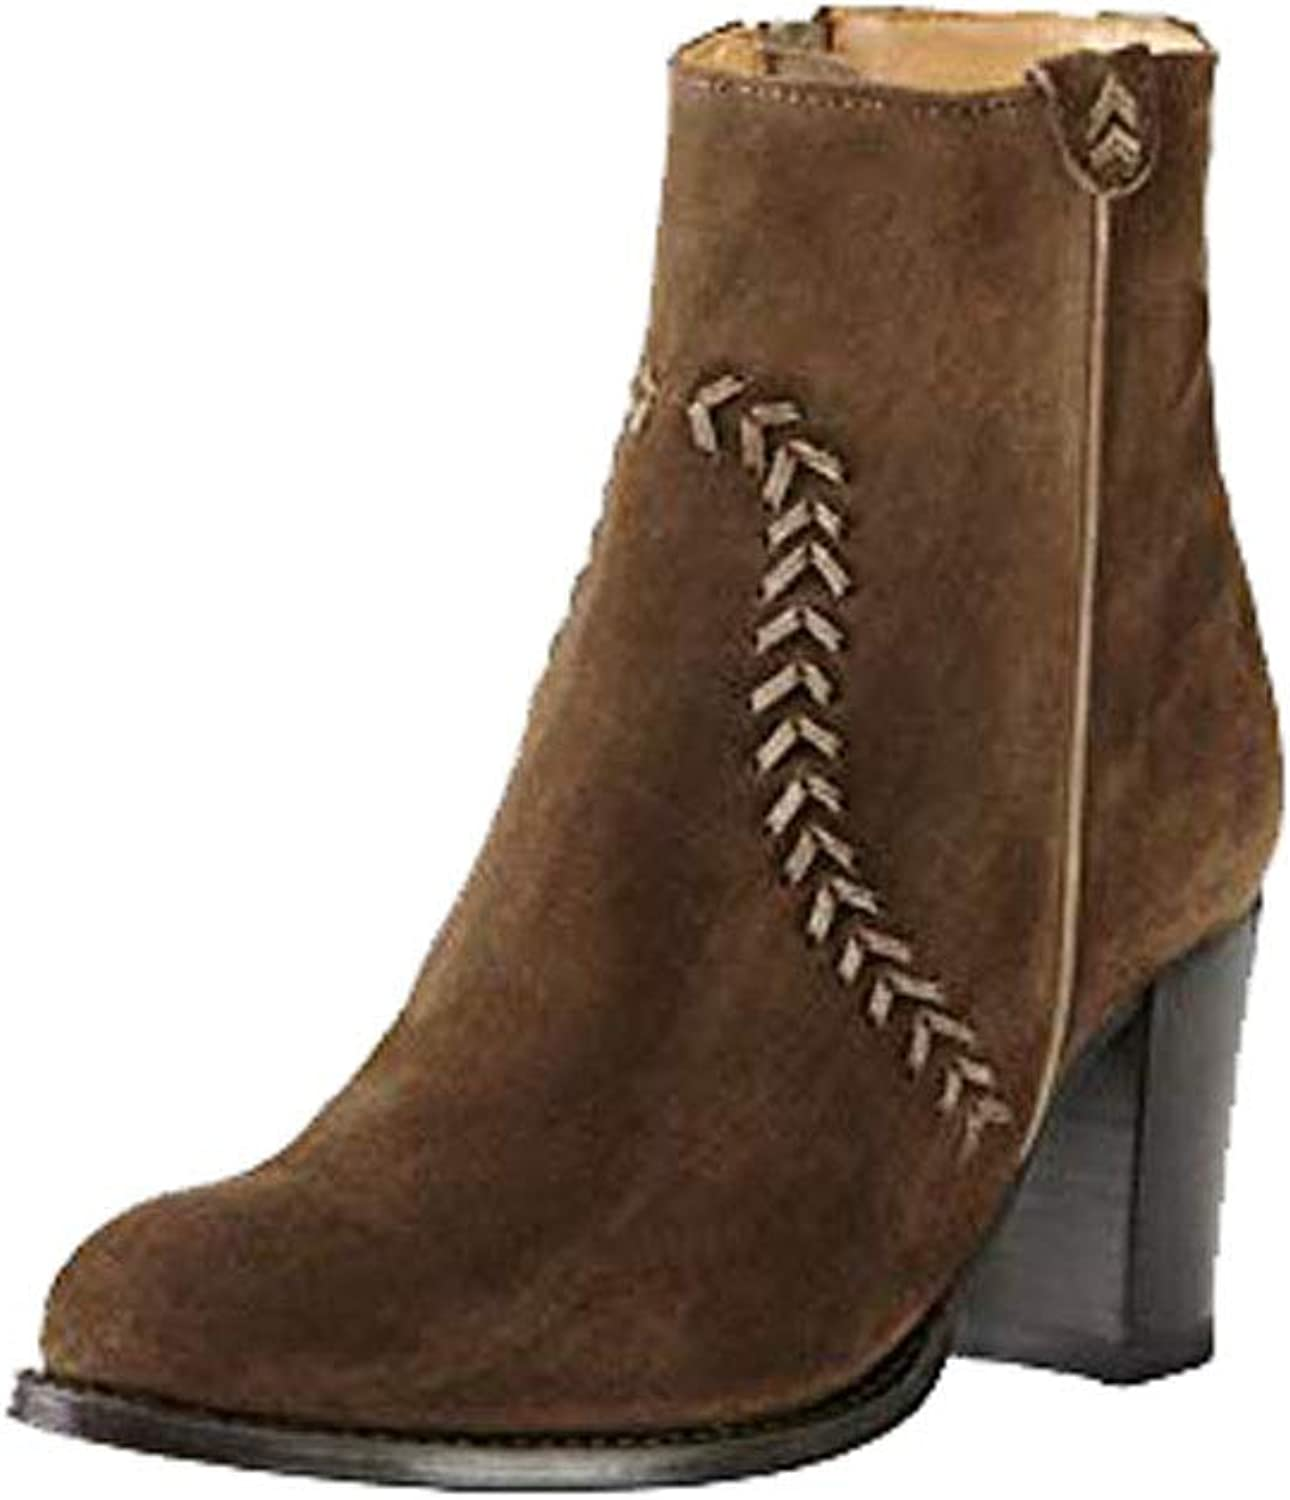 Ariat Women's Two24 Collection Sonya Ankle Bootie